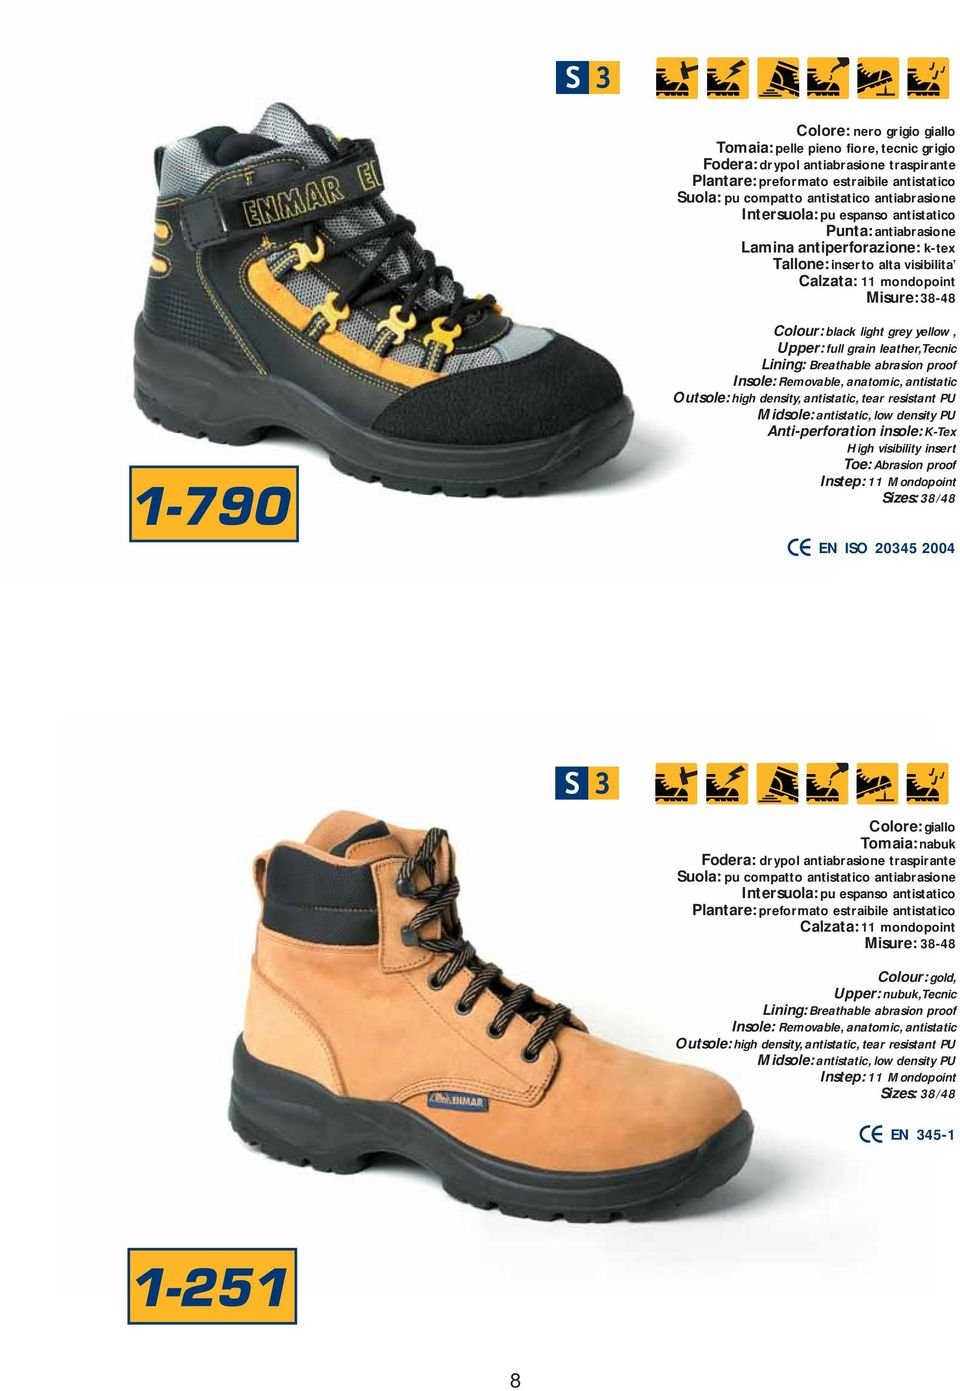 Upper: full grain leather, Tecnic Anti-perforation insole: K-Tex High visibility insert Toe: Abrasion proof EN IO 2045